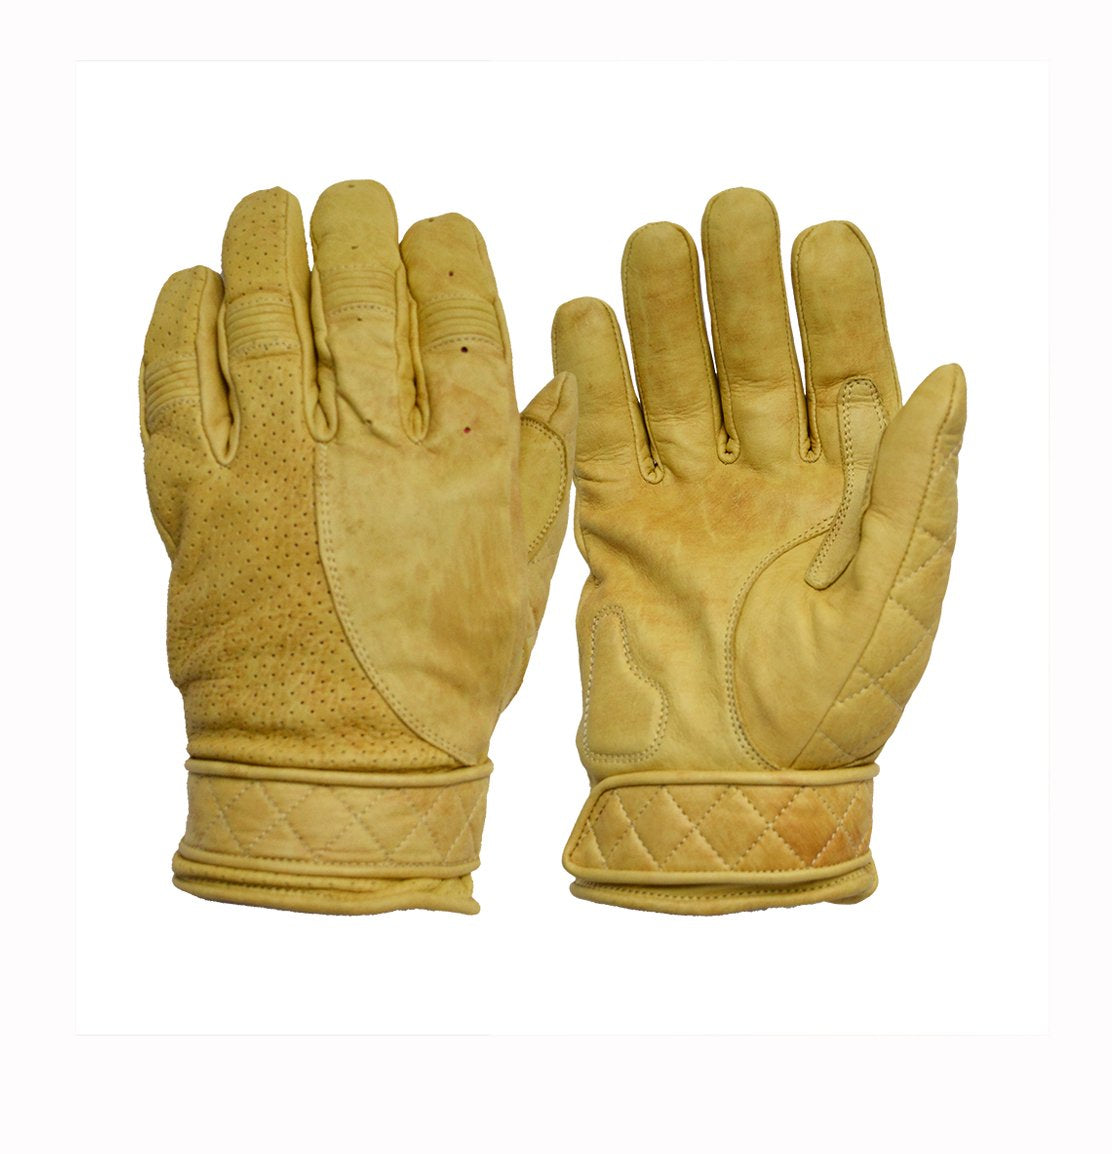 Goldtop England - Short Bobber Gloves Tan